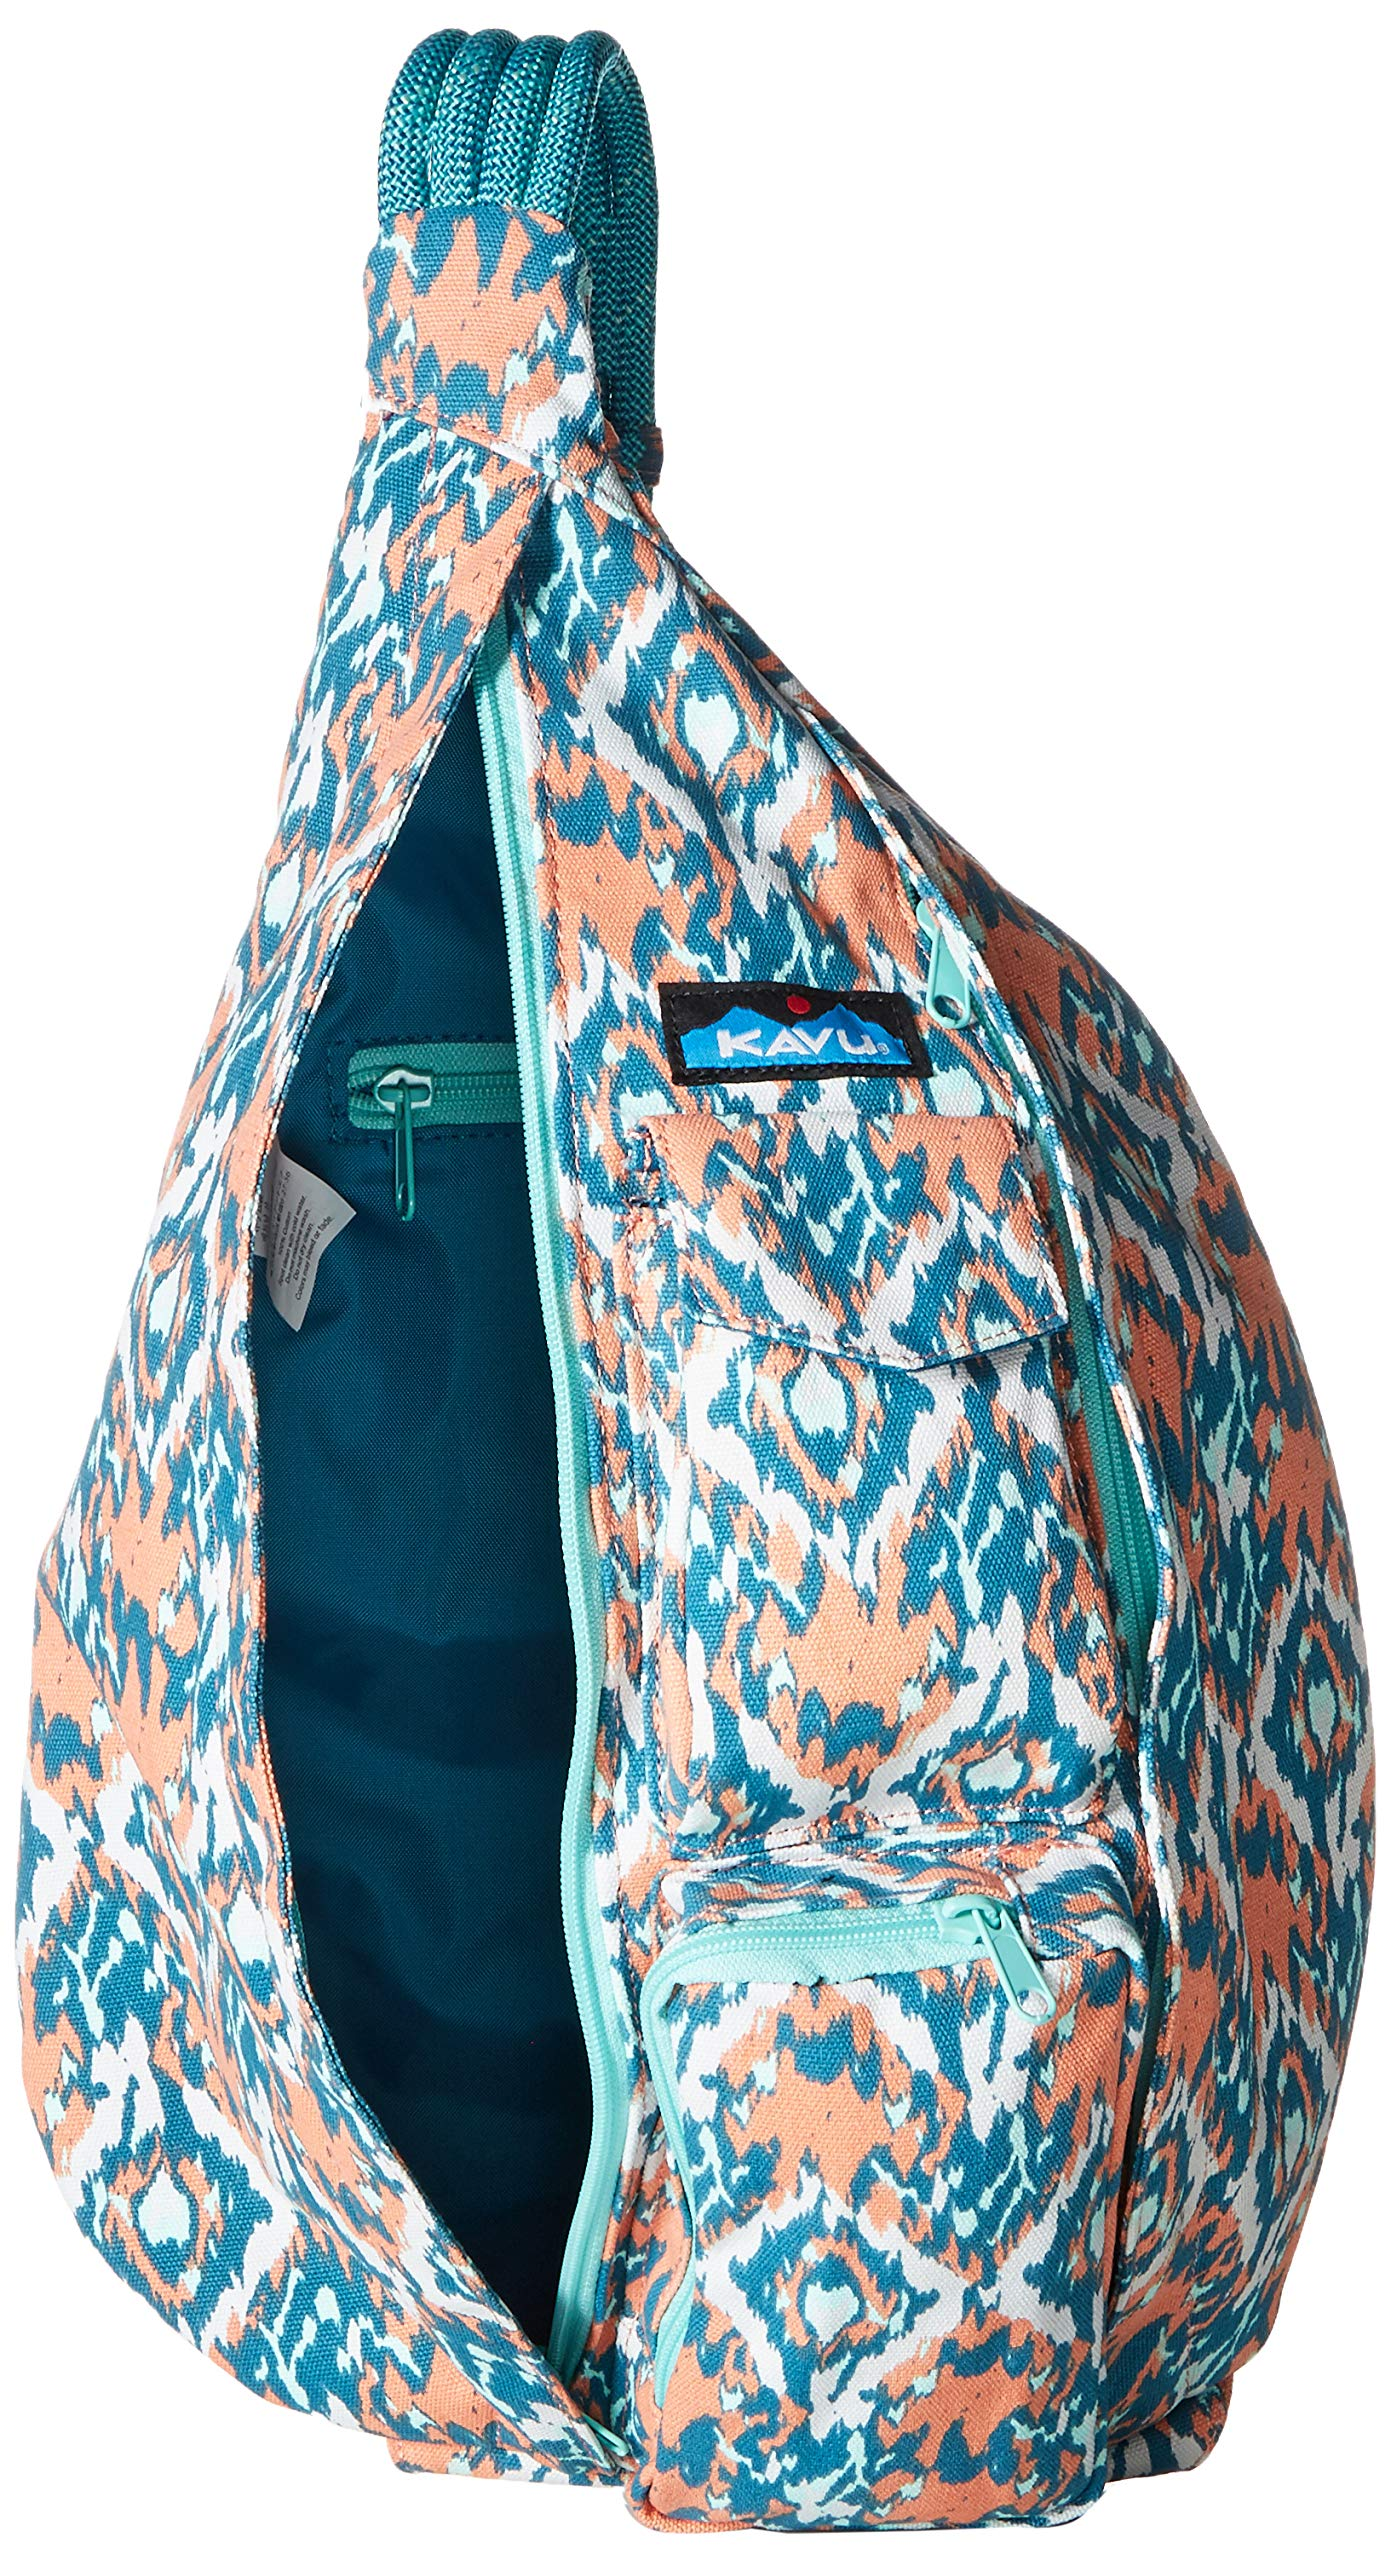 KAVU Women's Rope Bag, Beach Paint, No Size by KAVU (Image #3)